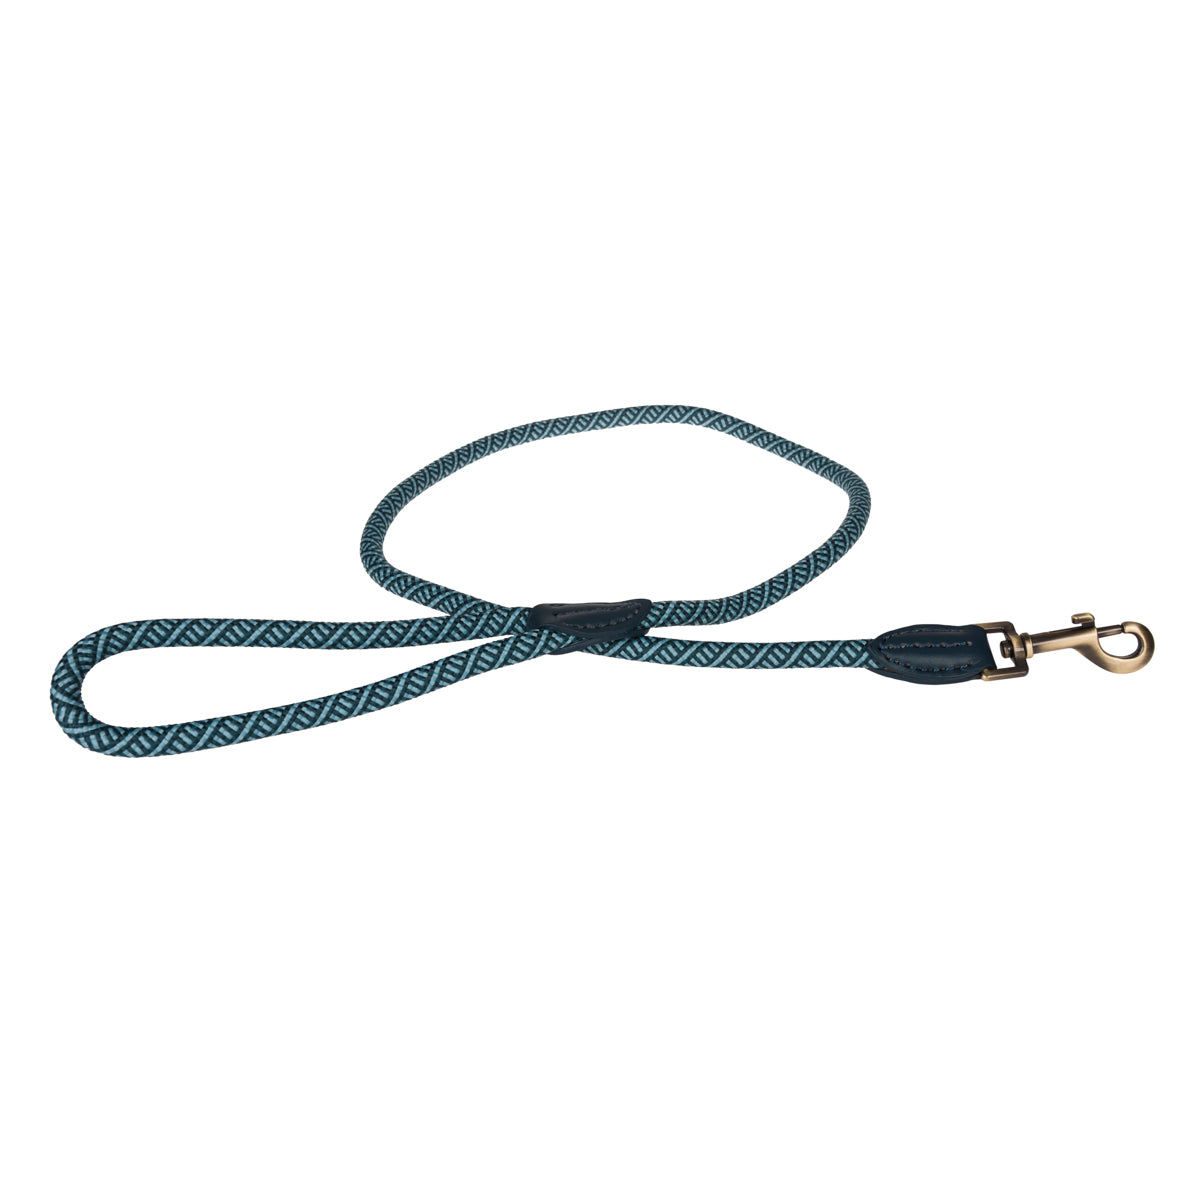 Teal Rope Lead